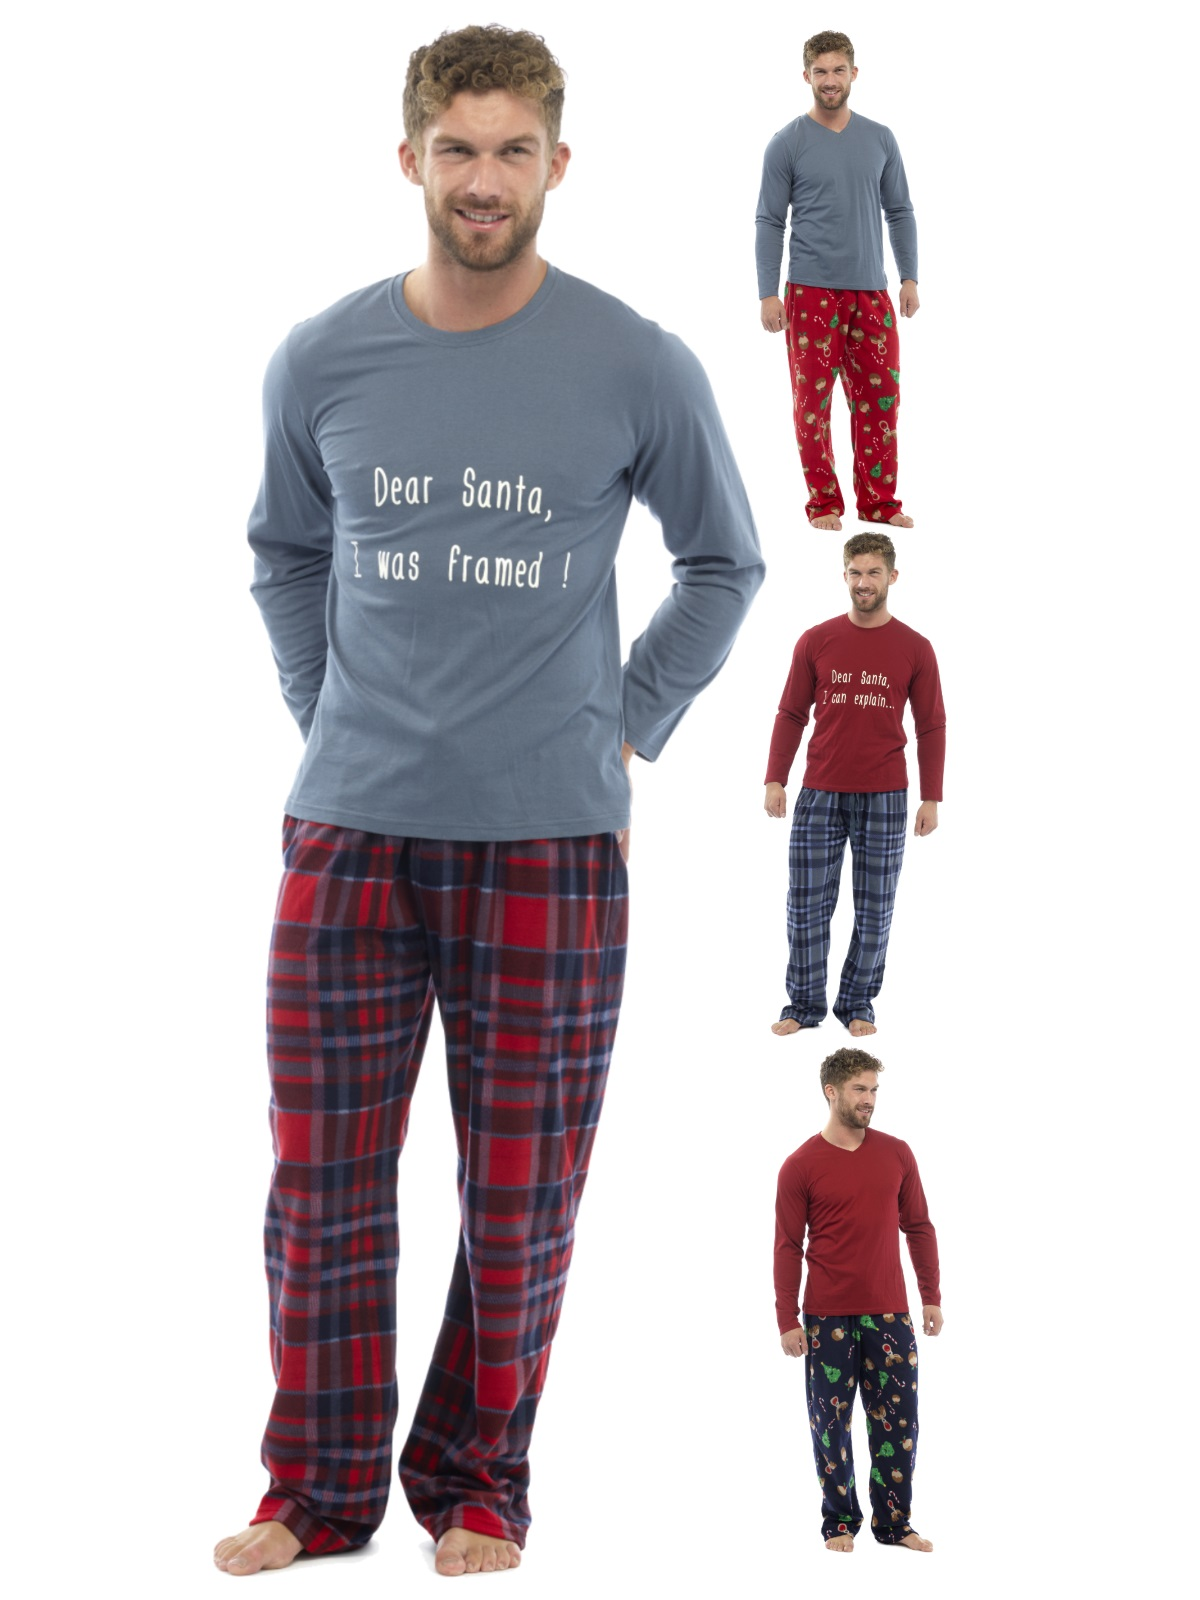 Mens Christmas Pajamas.Details About Luxury Mens Pyjamas Novelty Xmas Print Pjs Fleece Lounge Set Gift Size Uk S Xxl